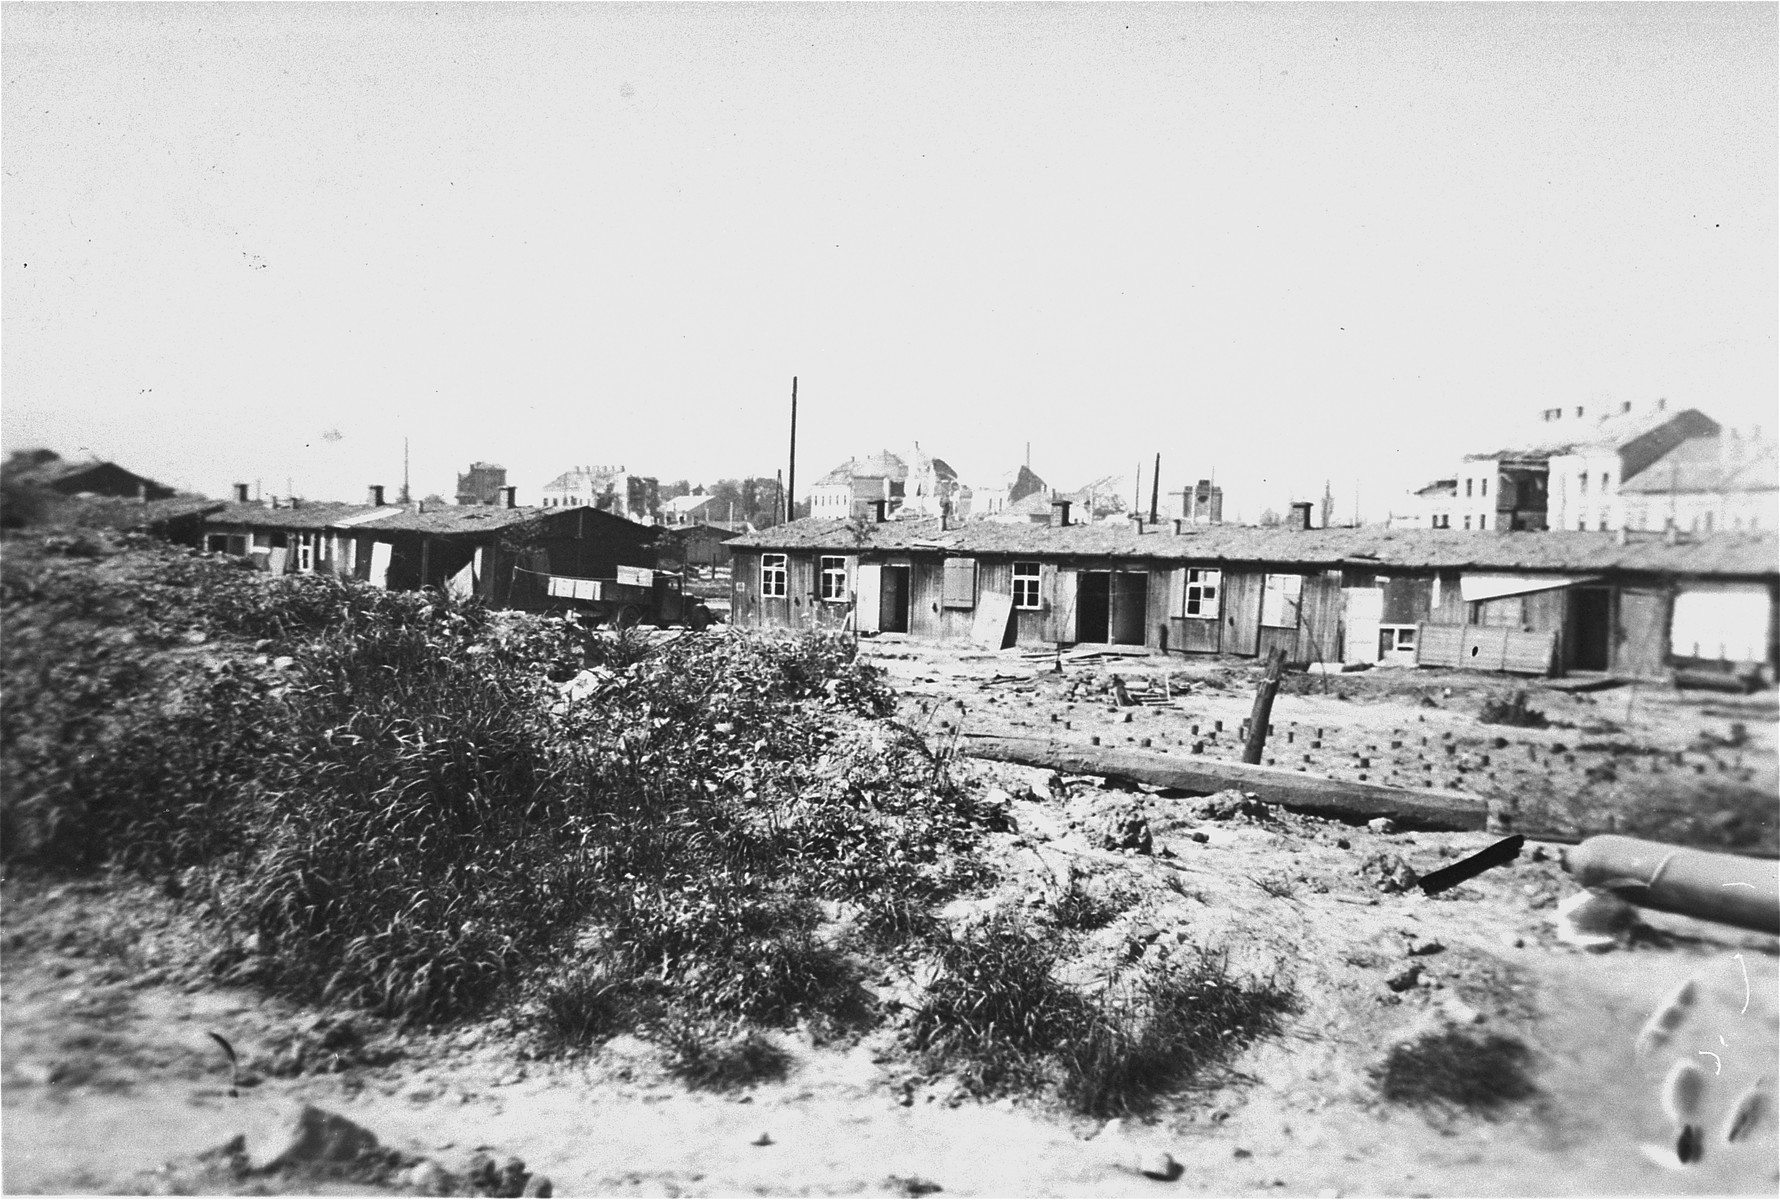 View of the Russian camp in one of the Linz sub-camps of Mauthausen.